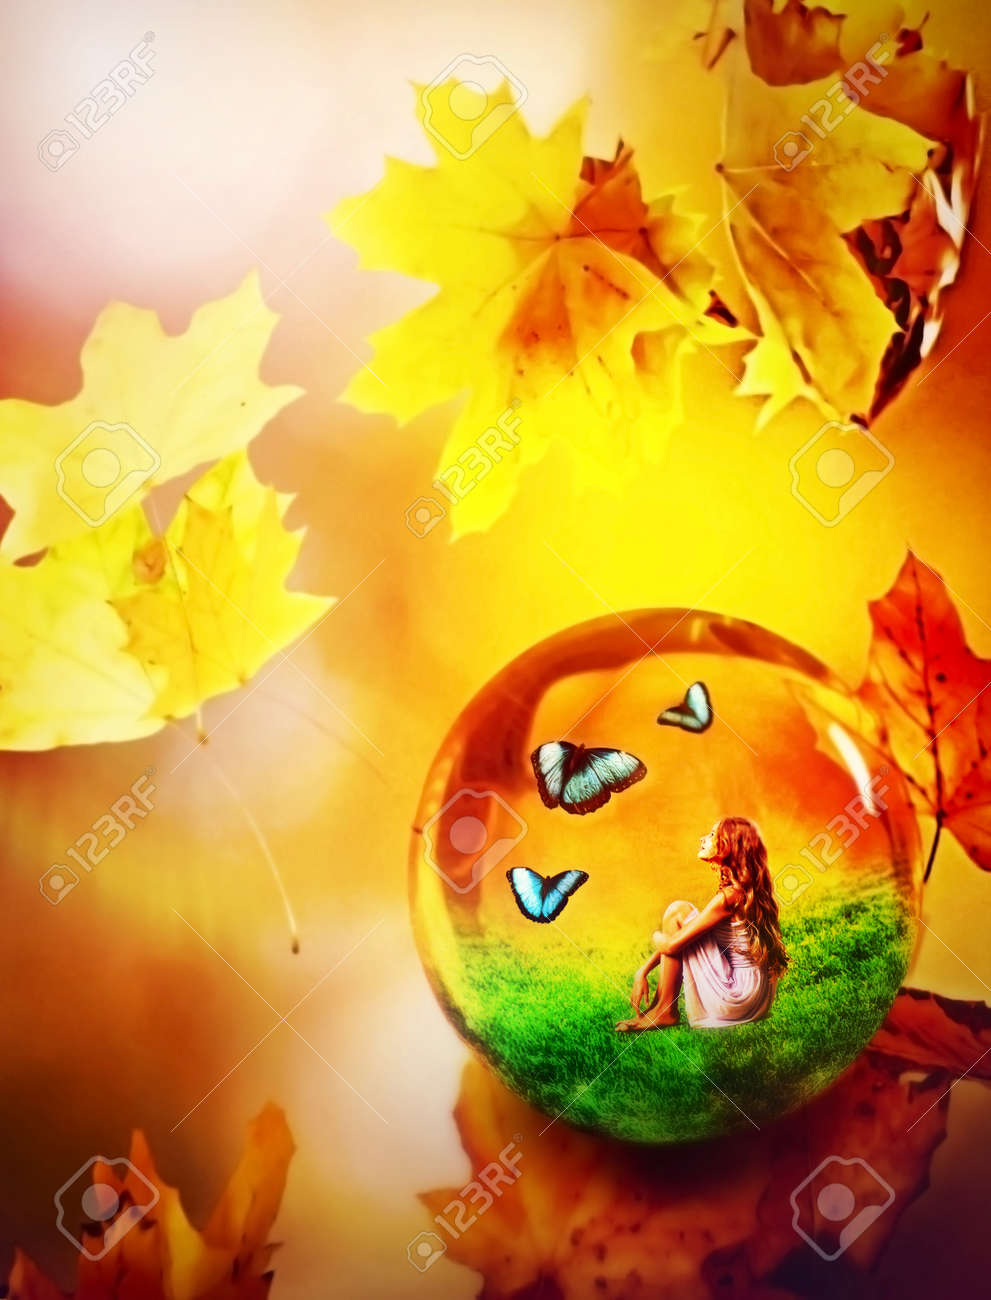 Cycle seasons of conceptual child art. Dream of green grass and autumn leaves. Hello autumn goodbye summer concept. - 157091165